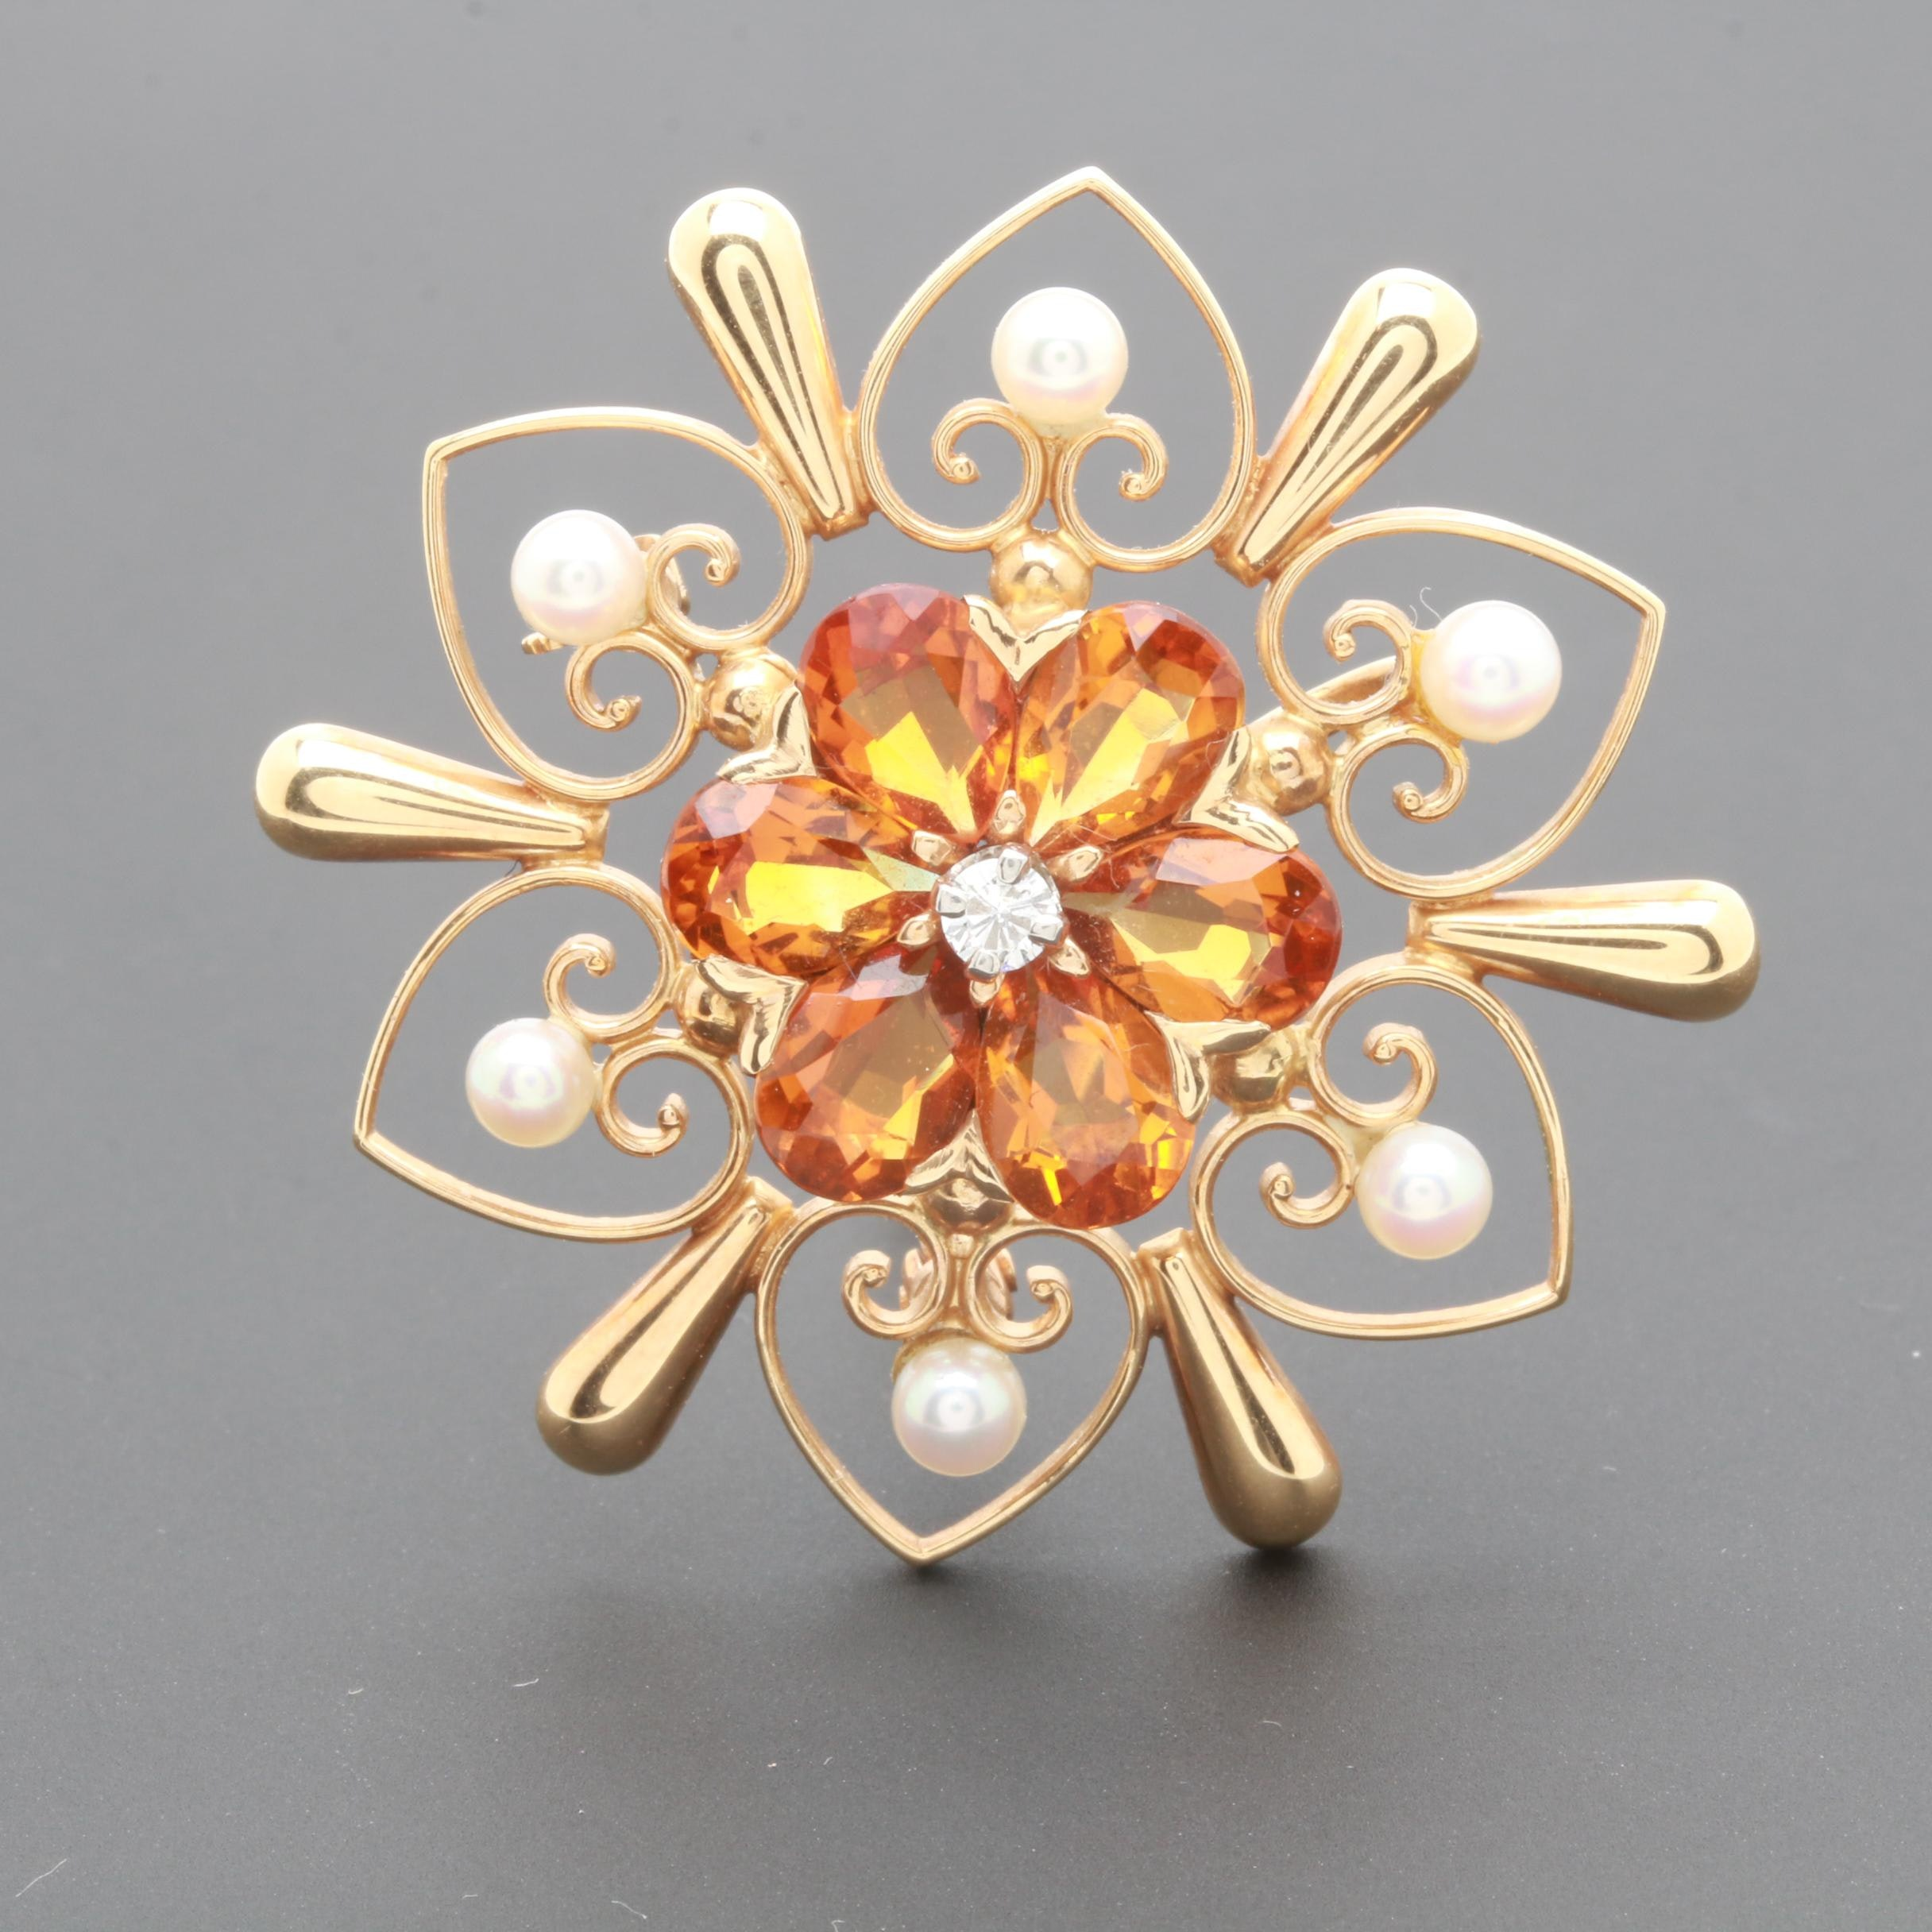 Vintage 14K Yellow Gold Citrine, Cultured Pearl and Diamond Floral Brooch